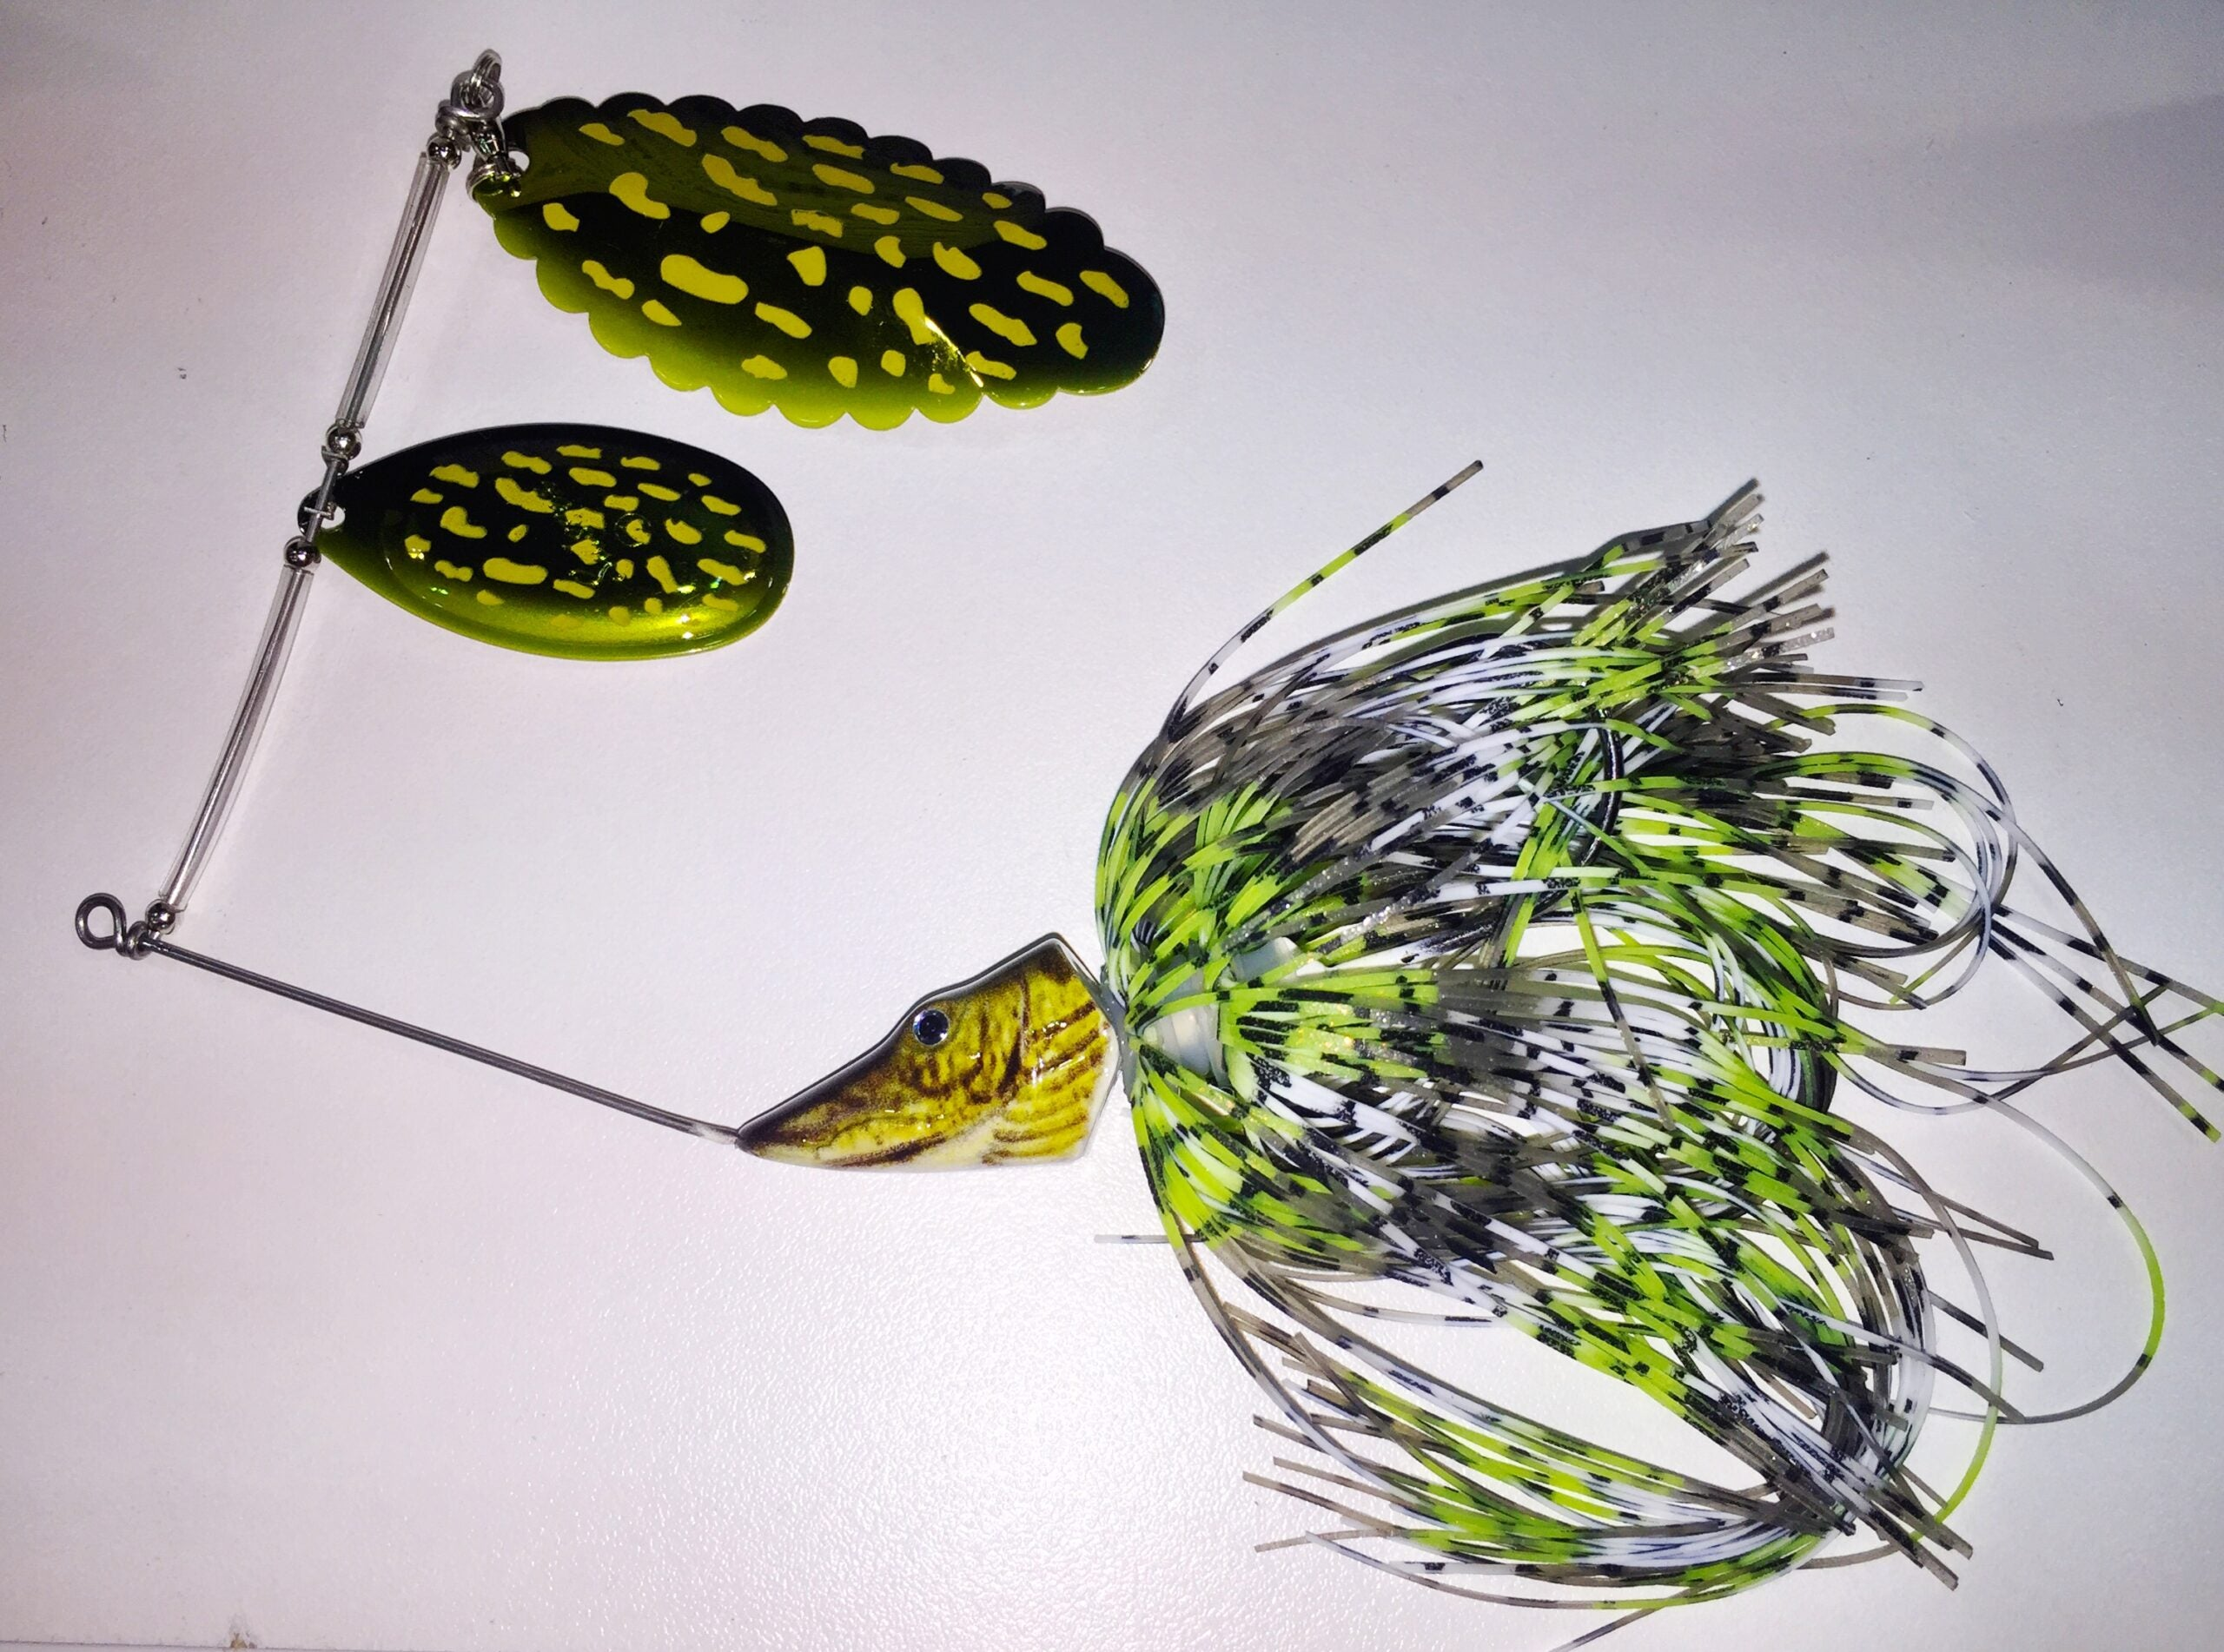 Ultra-Realism Has Infected All Other Lure Categories, So Why Not Spinnerbaits?